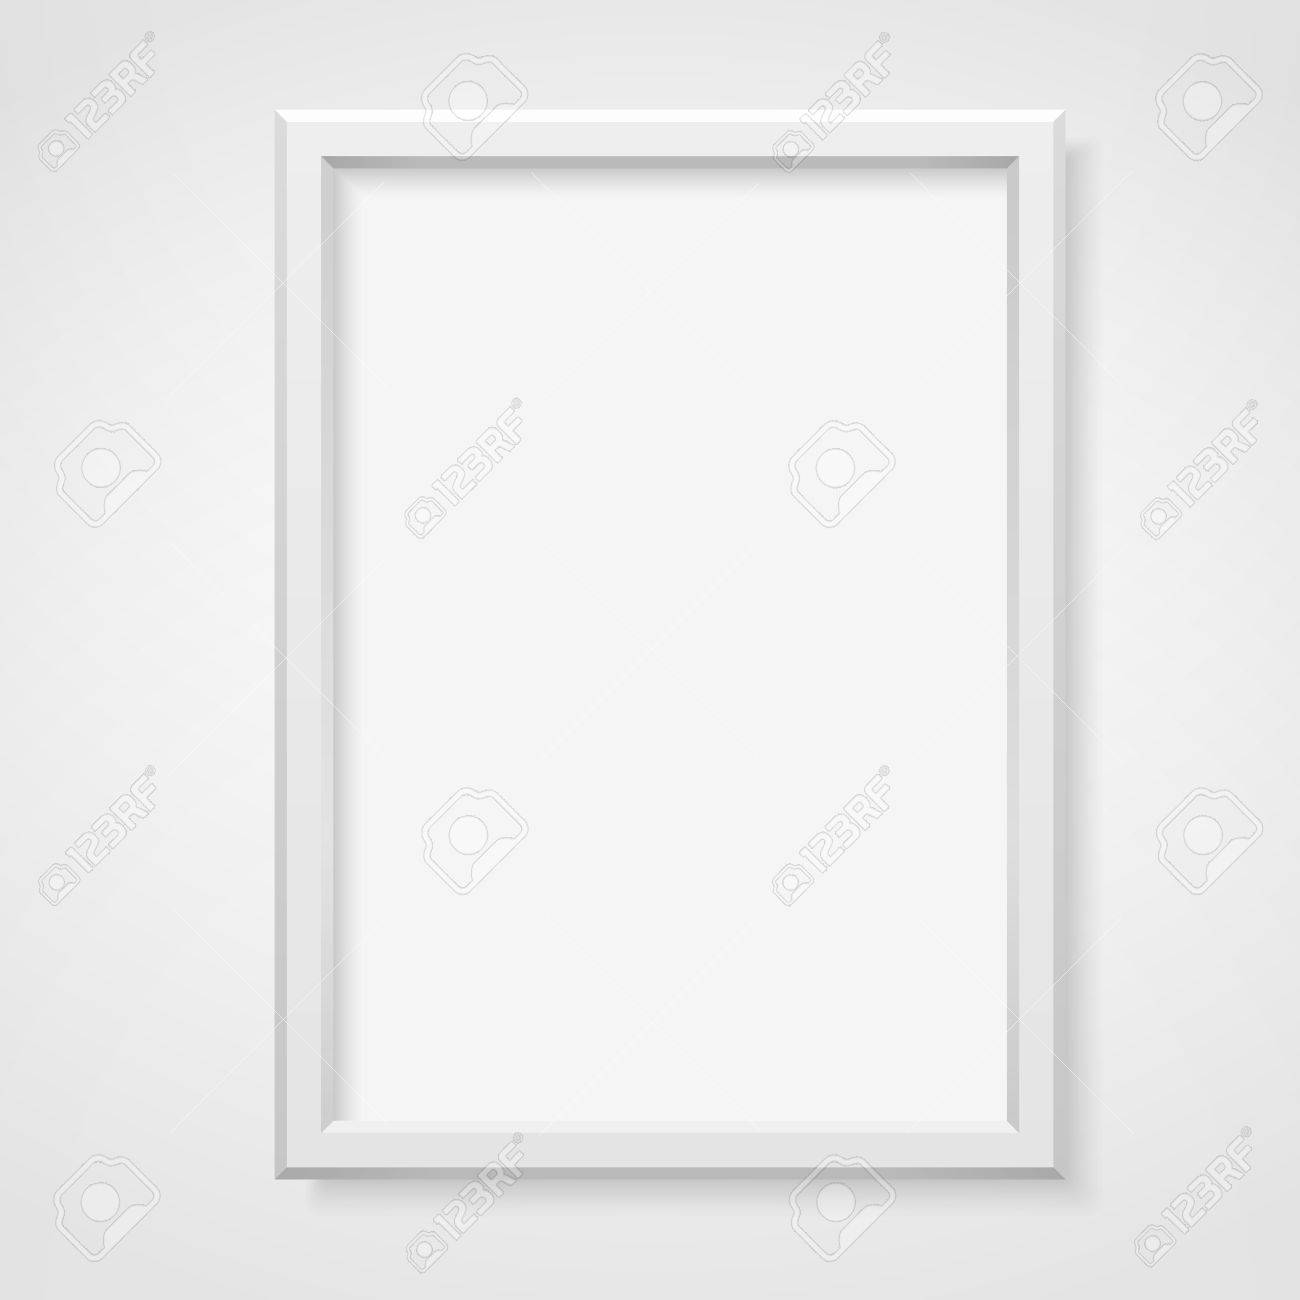 Blank Frame, A4 Size Royalty Free Cliparts, Vectors, And Stock ...